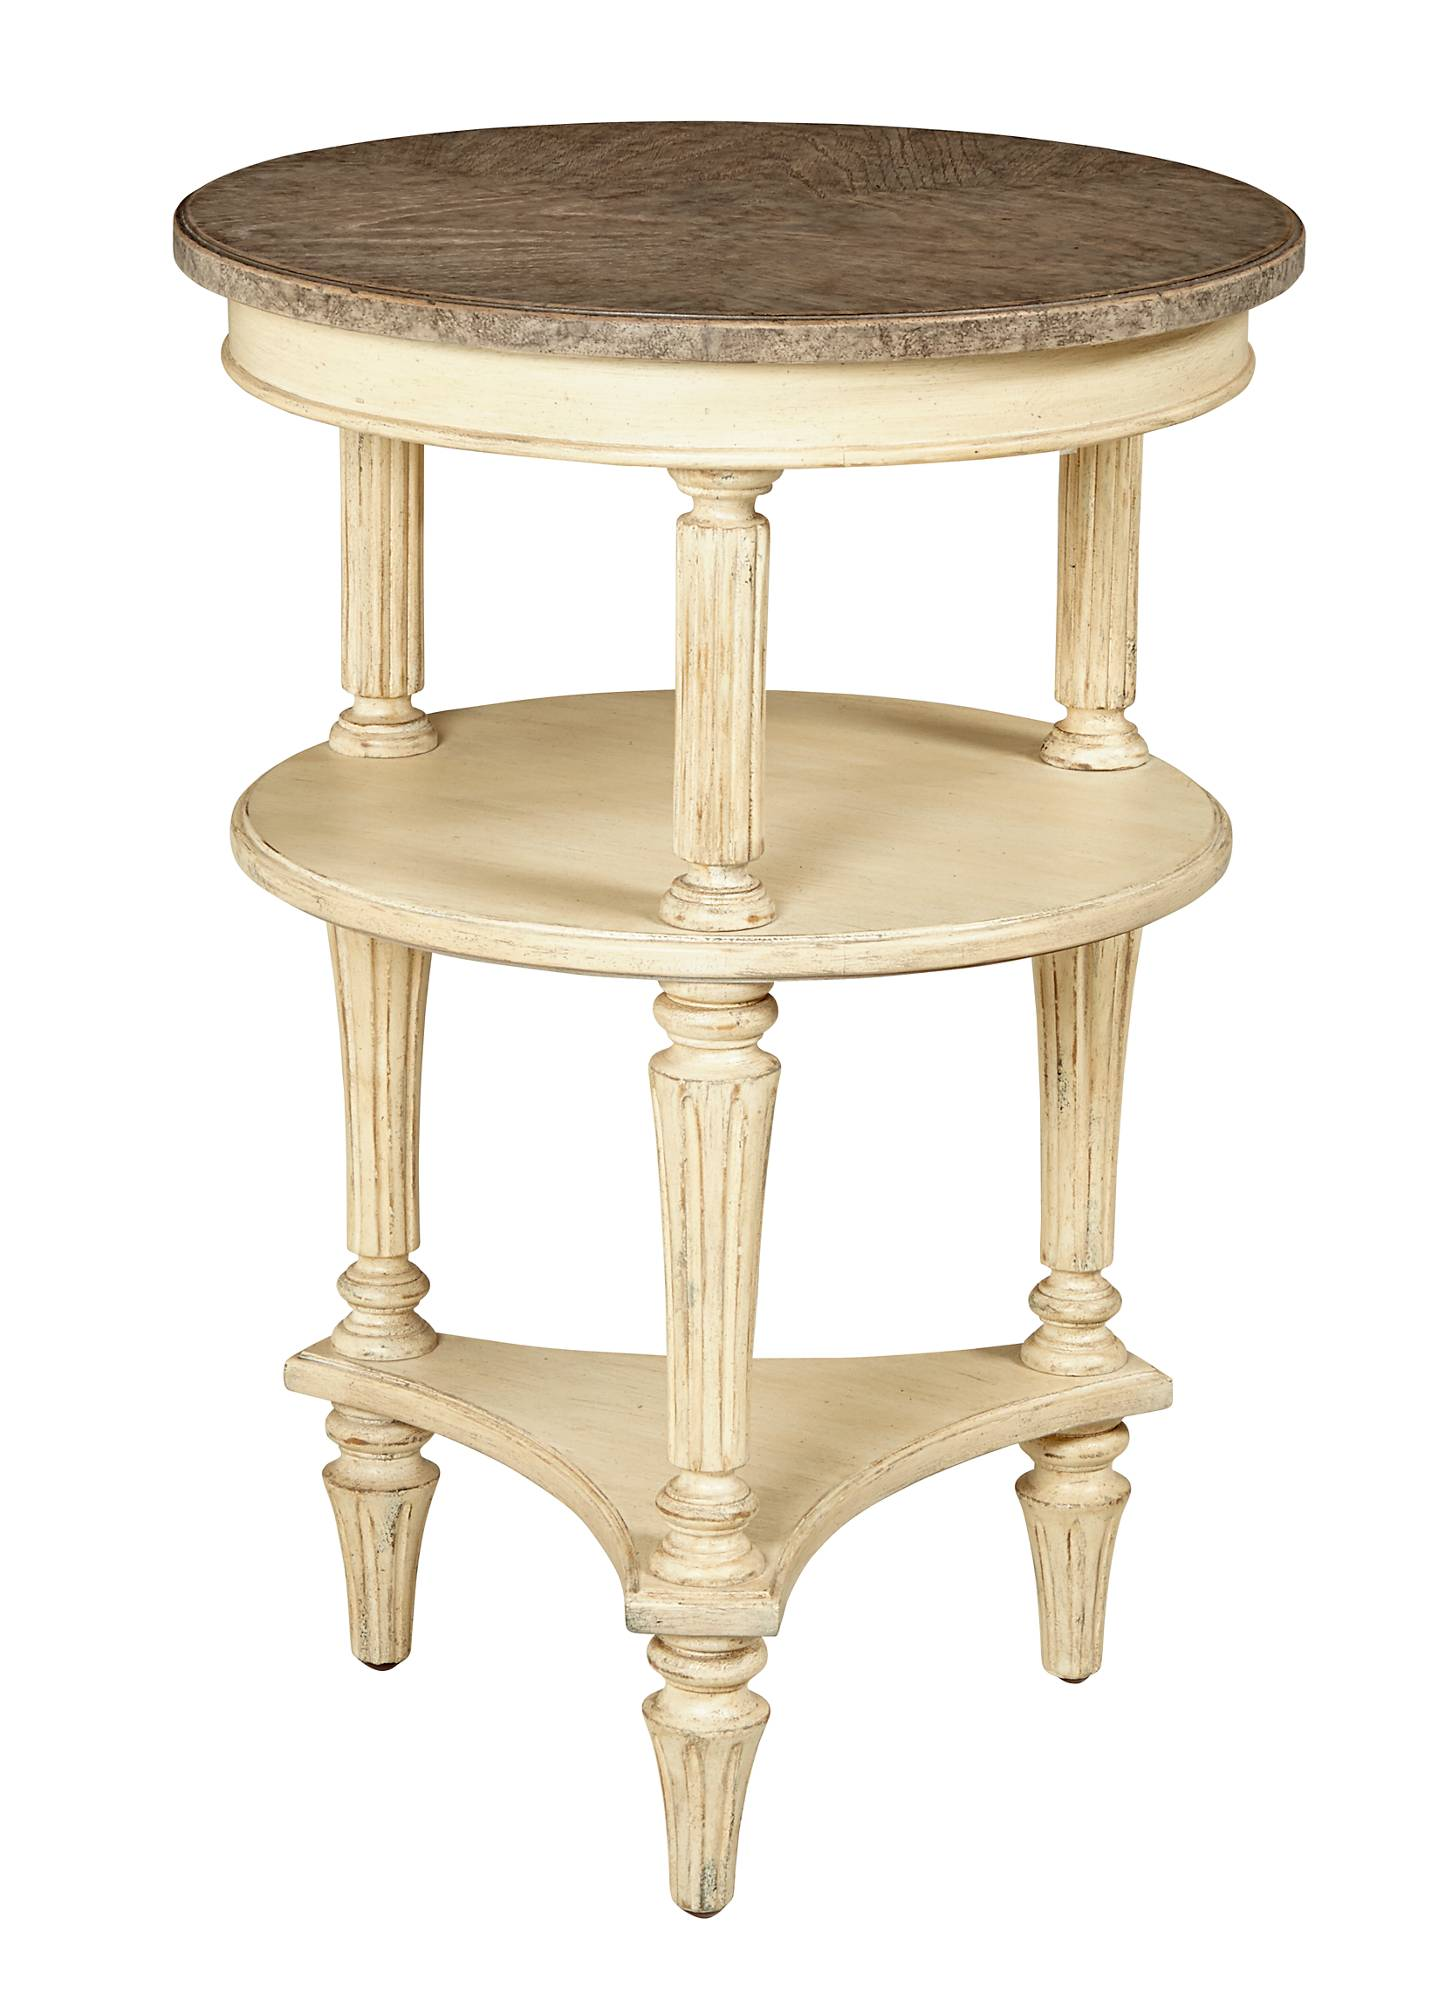 Stanley Furniture European Cottage Martini Table - Item Number: 007-25-16